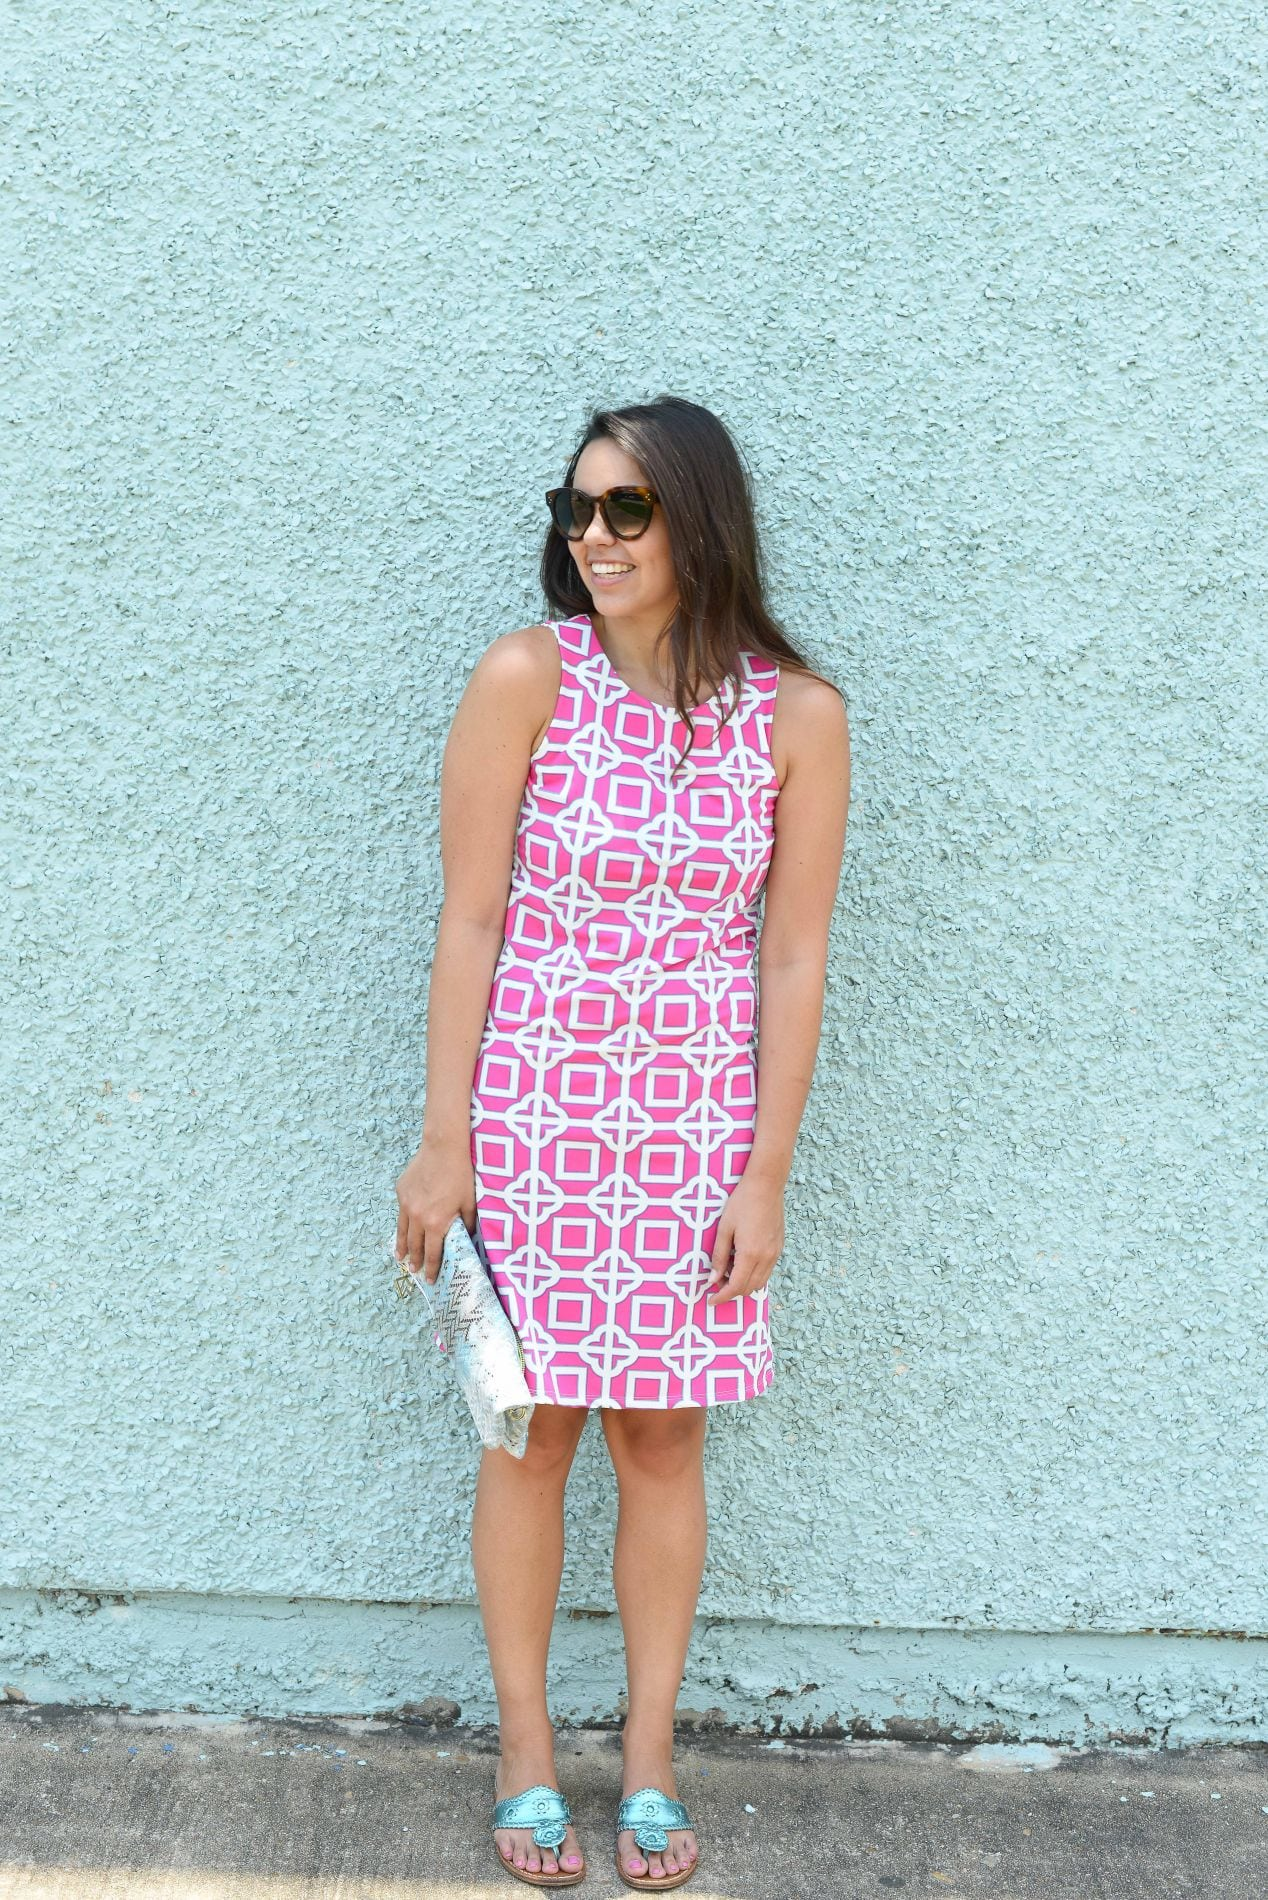 Turquoise wall & hot pink dress